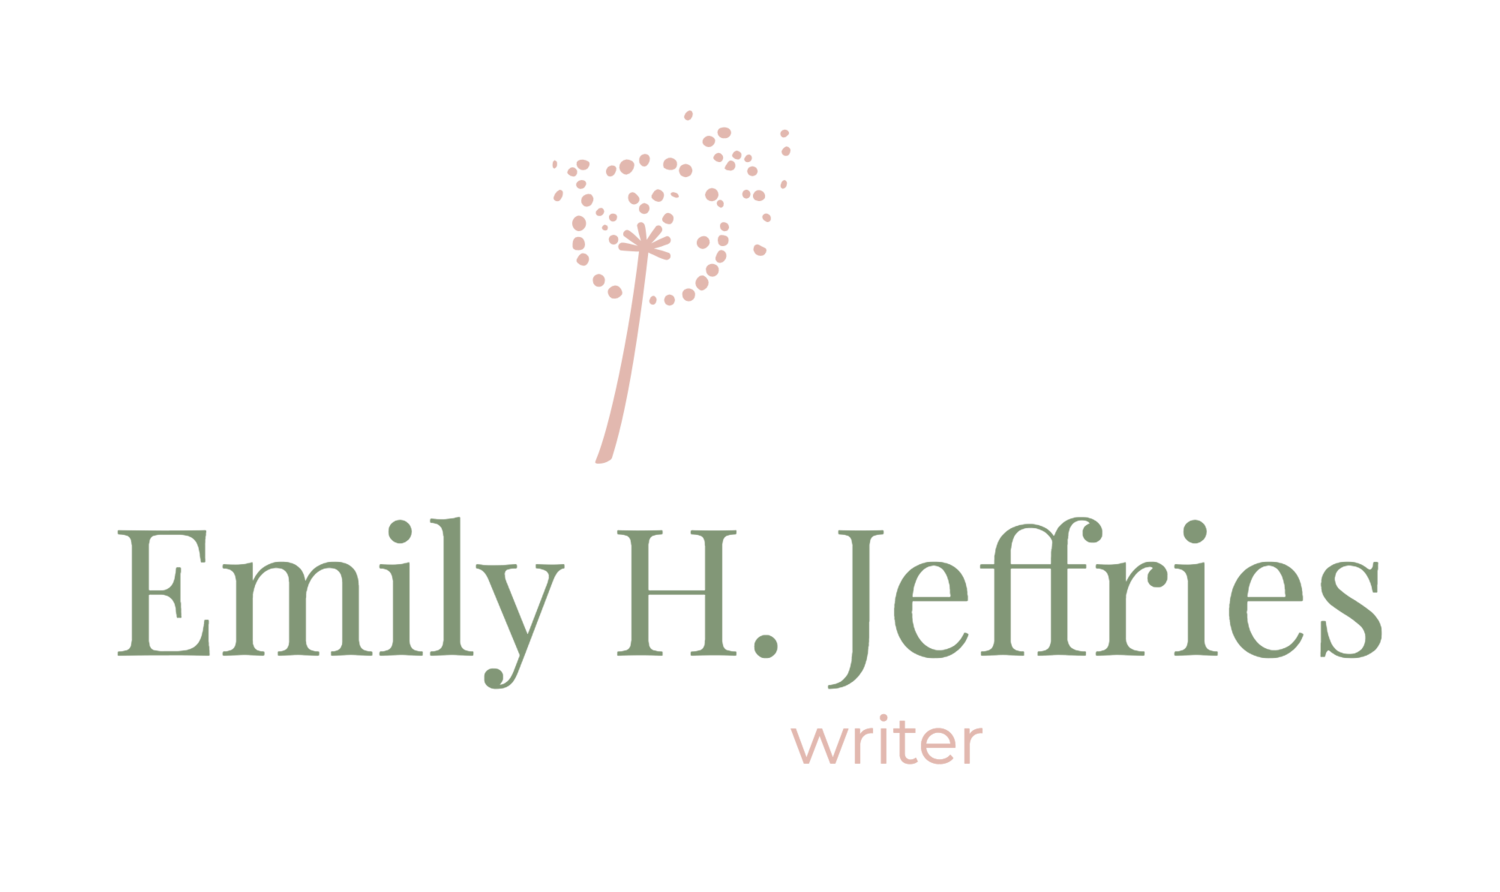 Emily H. Jeffries